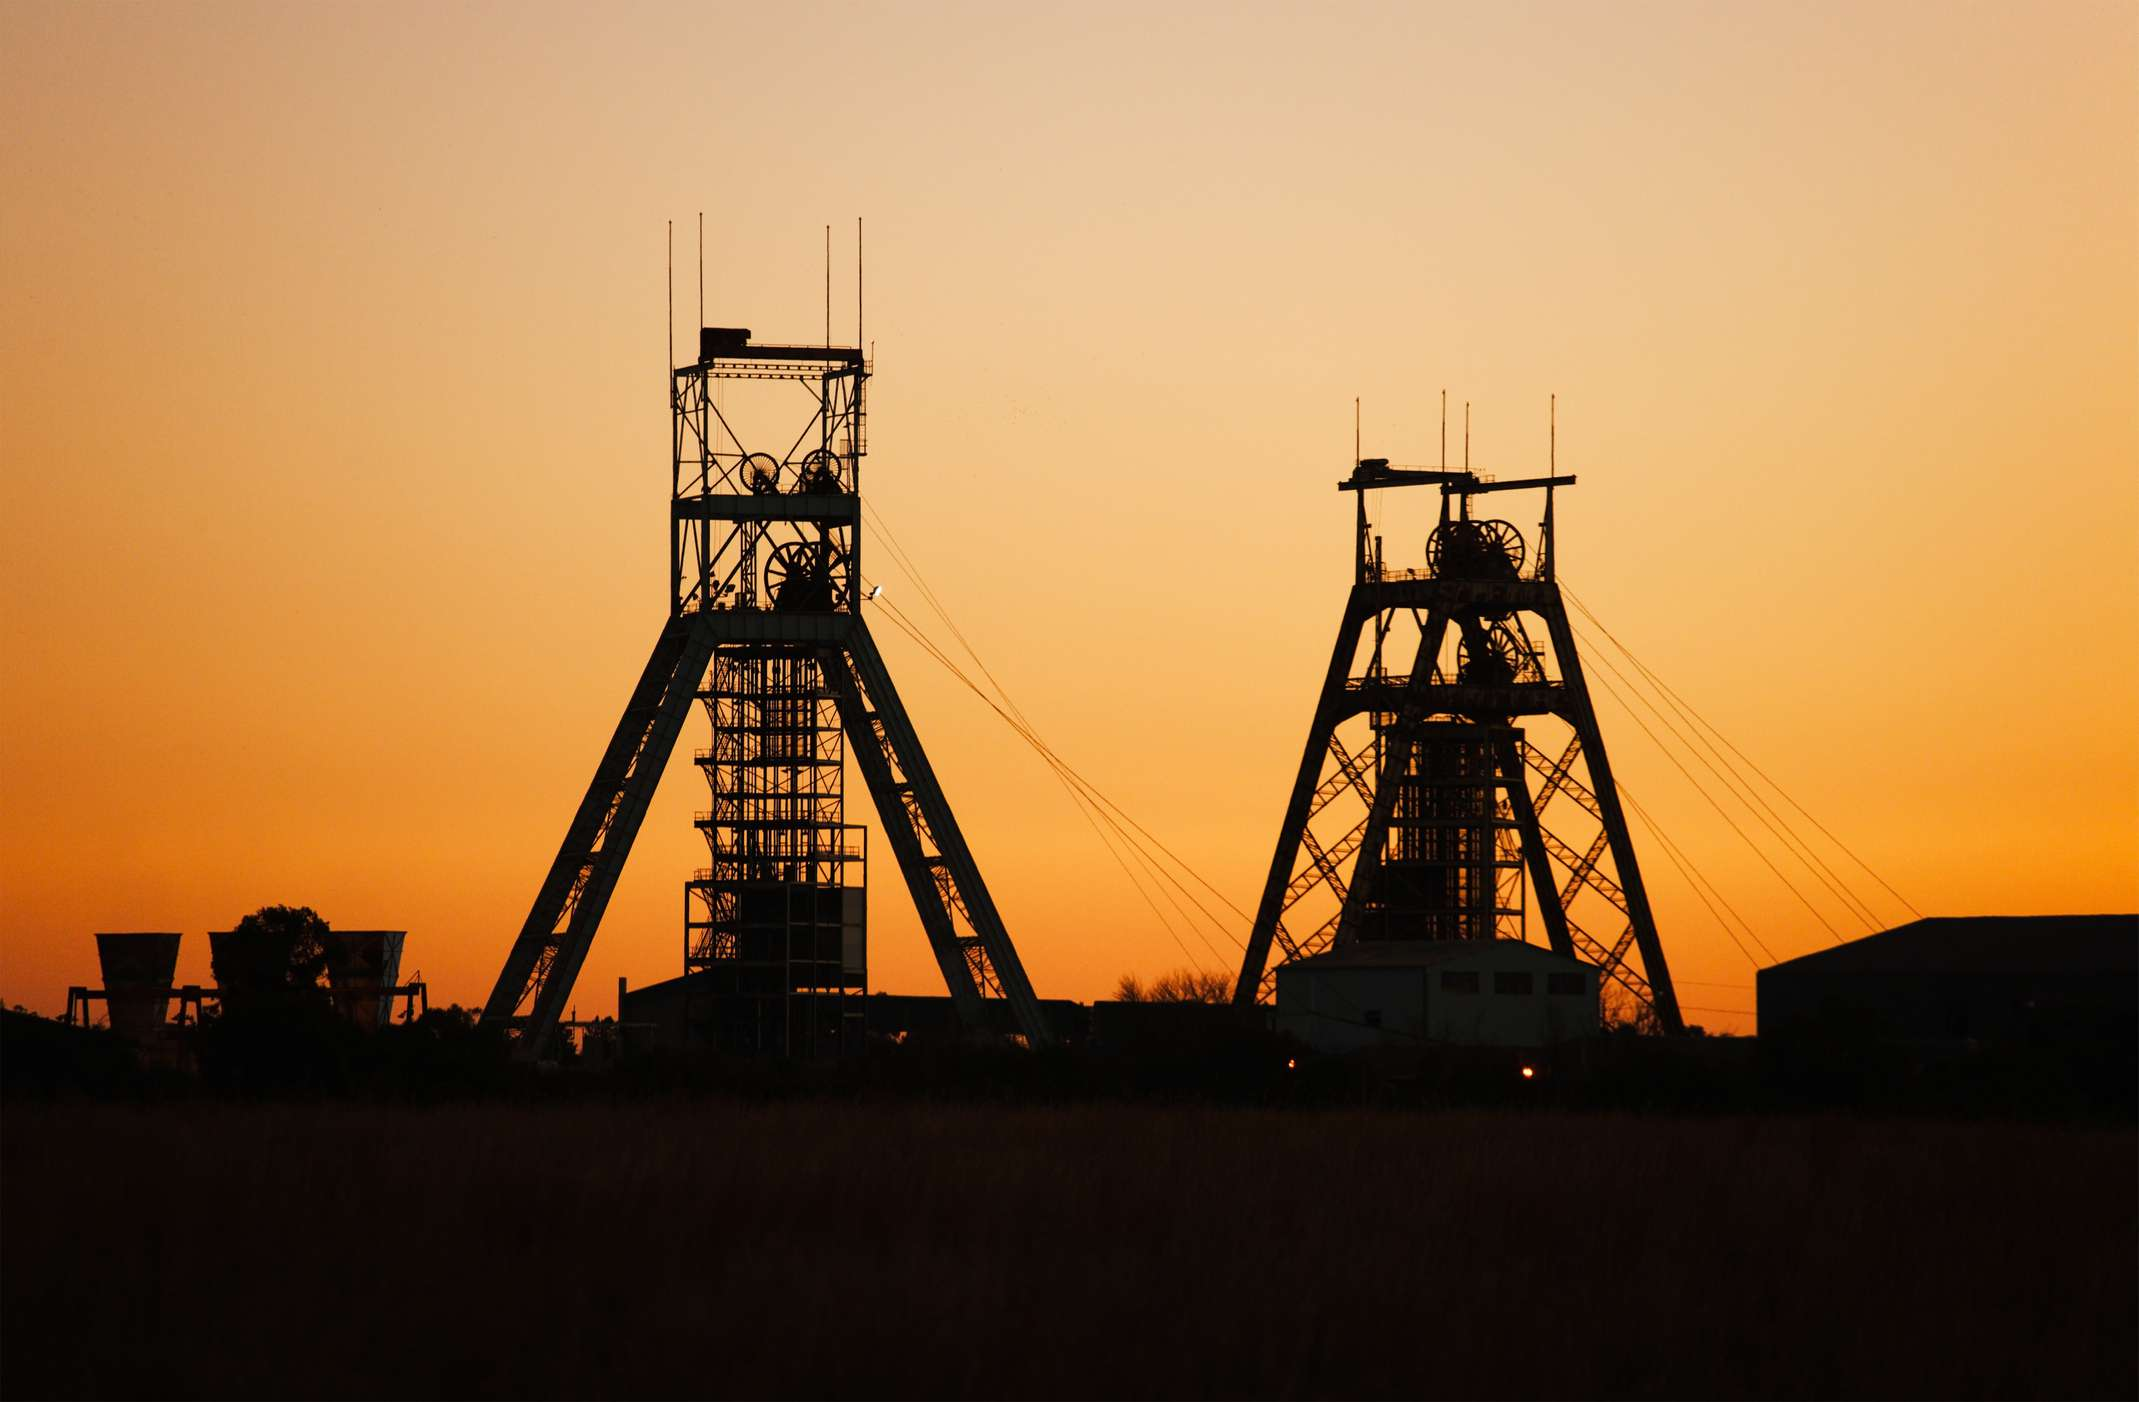 Silhouette of old gold mine at Gold Reef City, Johannesburg